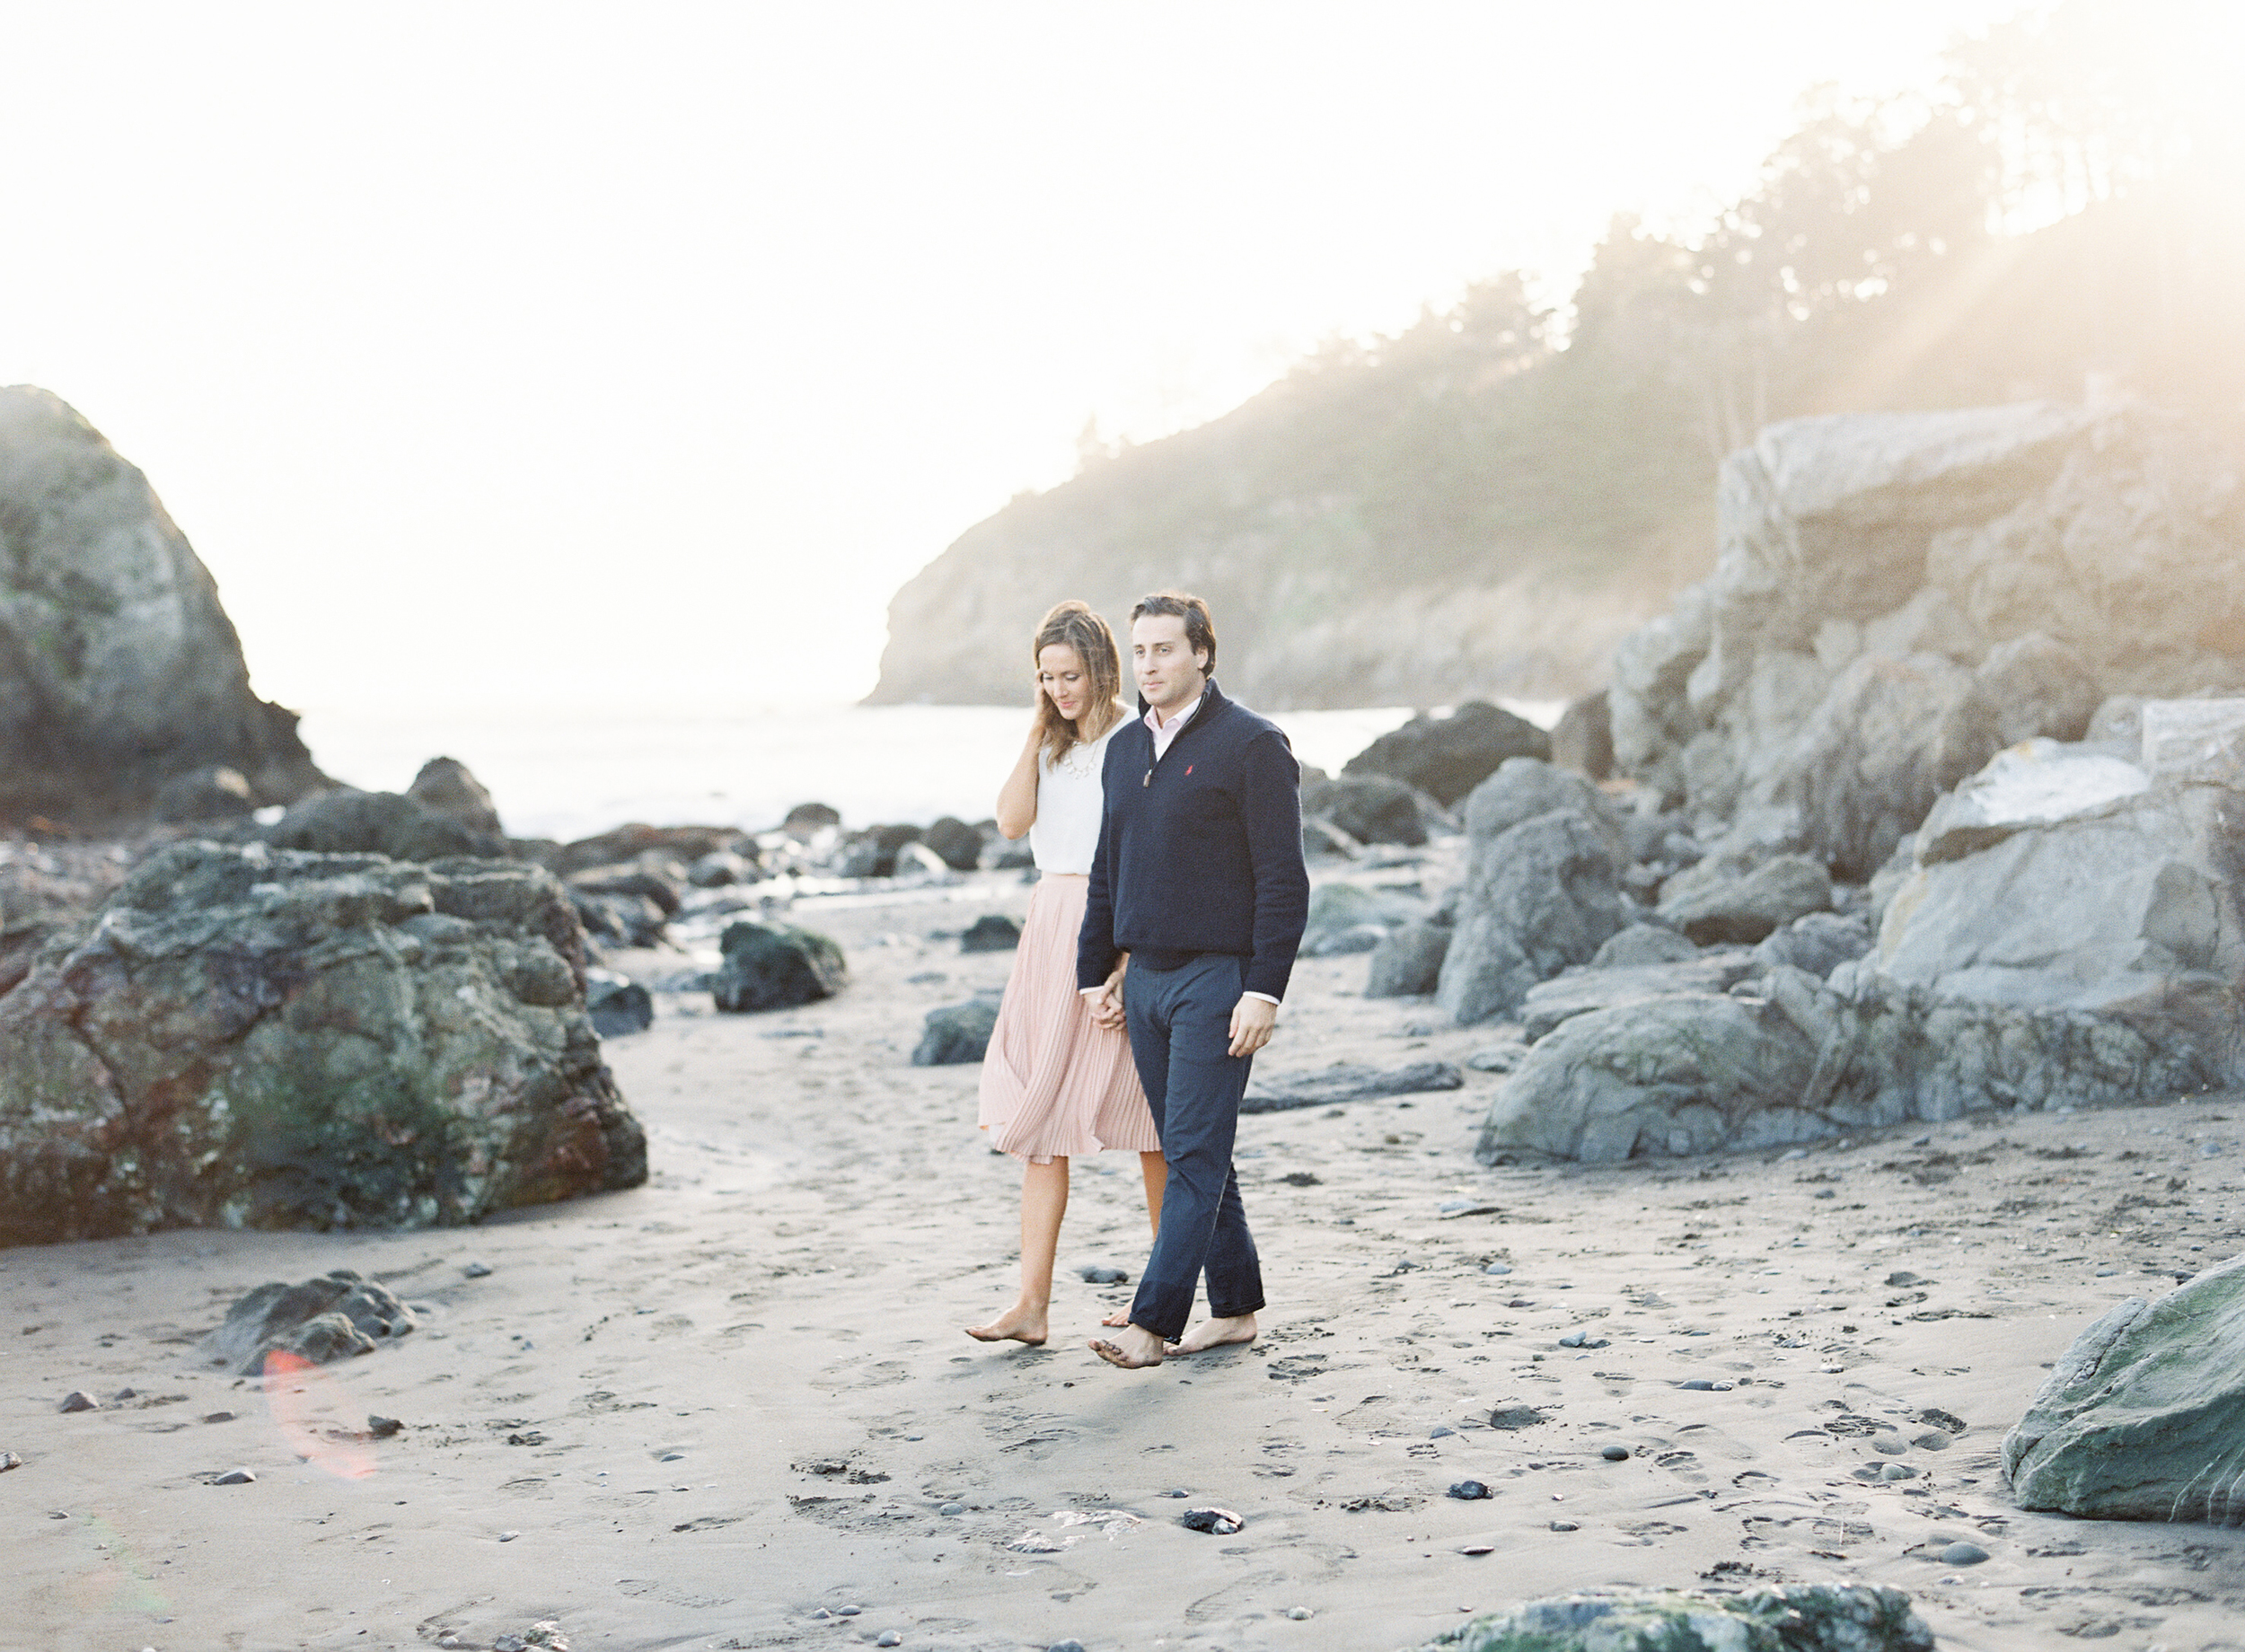 Meghan Mehan Photography - Fine Art Film Wedding Photography - San Francisco | Napa | Sonoma | Big Sur | Chicago | Minneapolis | Milwaukee | Lake Geneva | Door County | Wisconsin 041.jpg